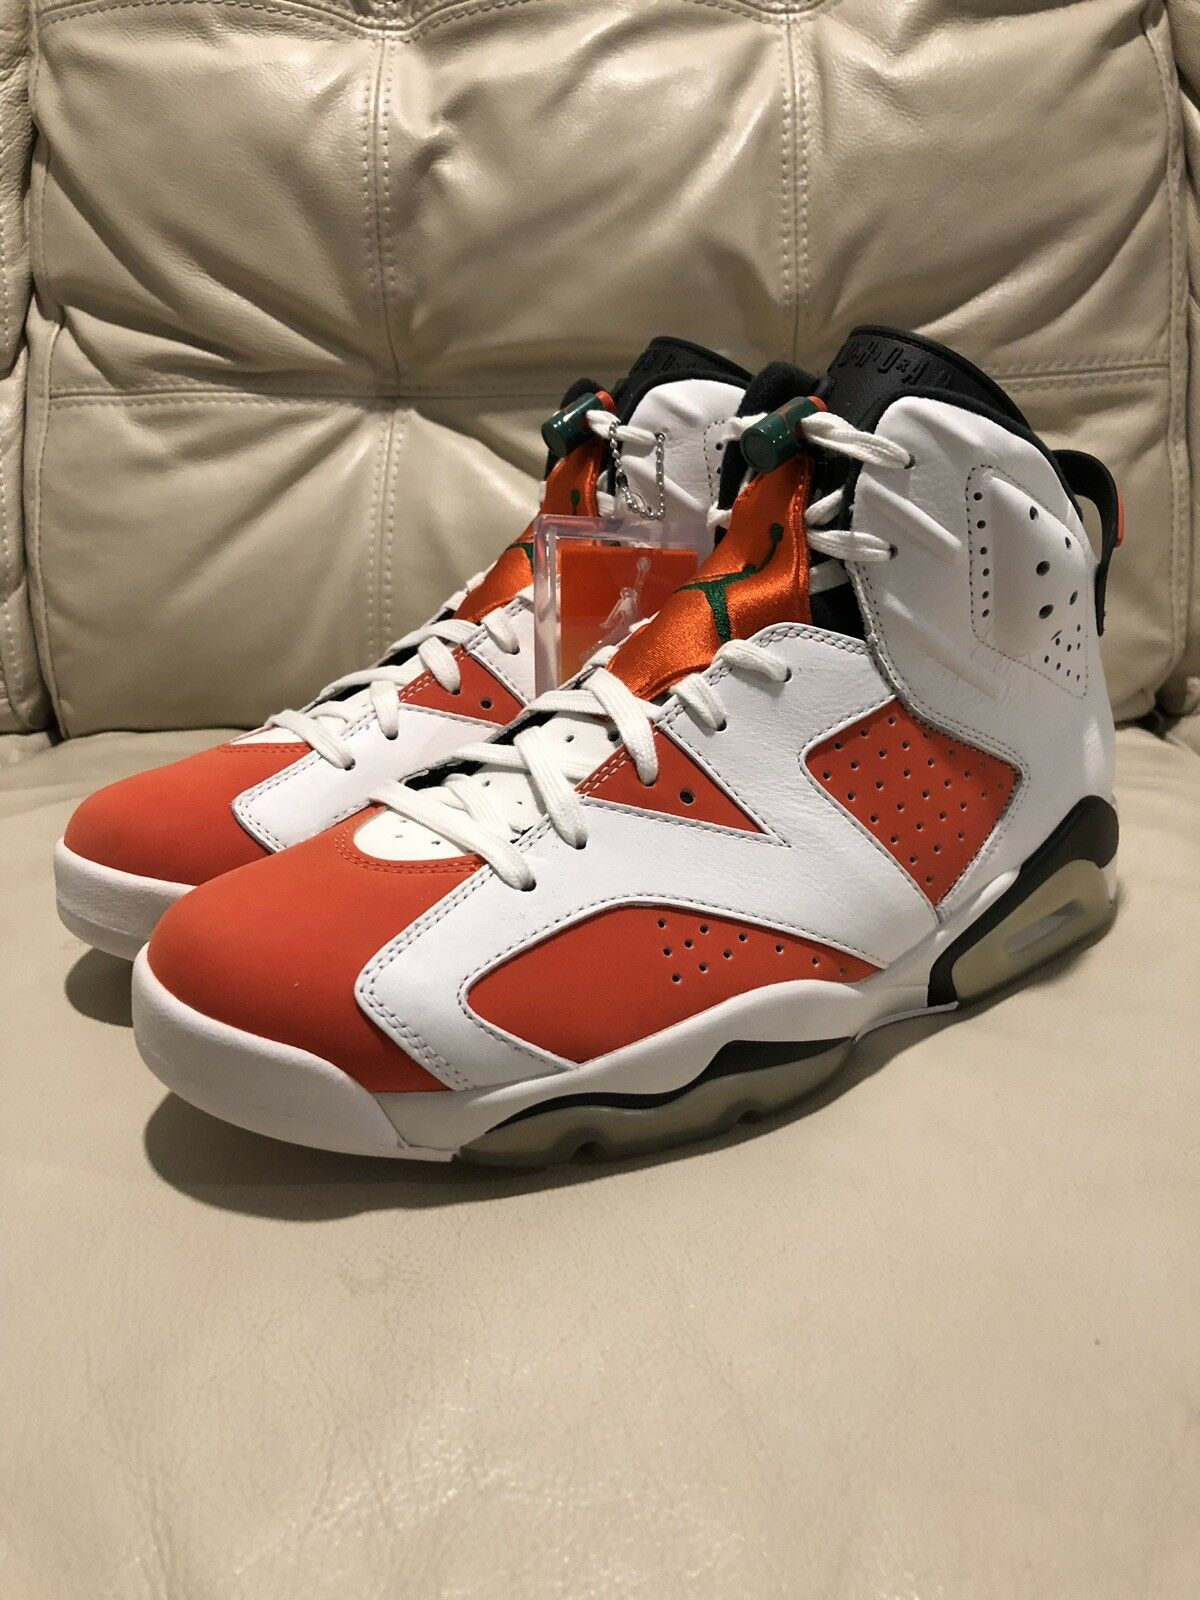 Nike Air Jordan 6 Retro  LIKE MIKE  colorway, Size 10.5 Mens, BRAND NEW IN BOX